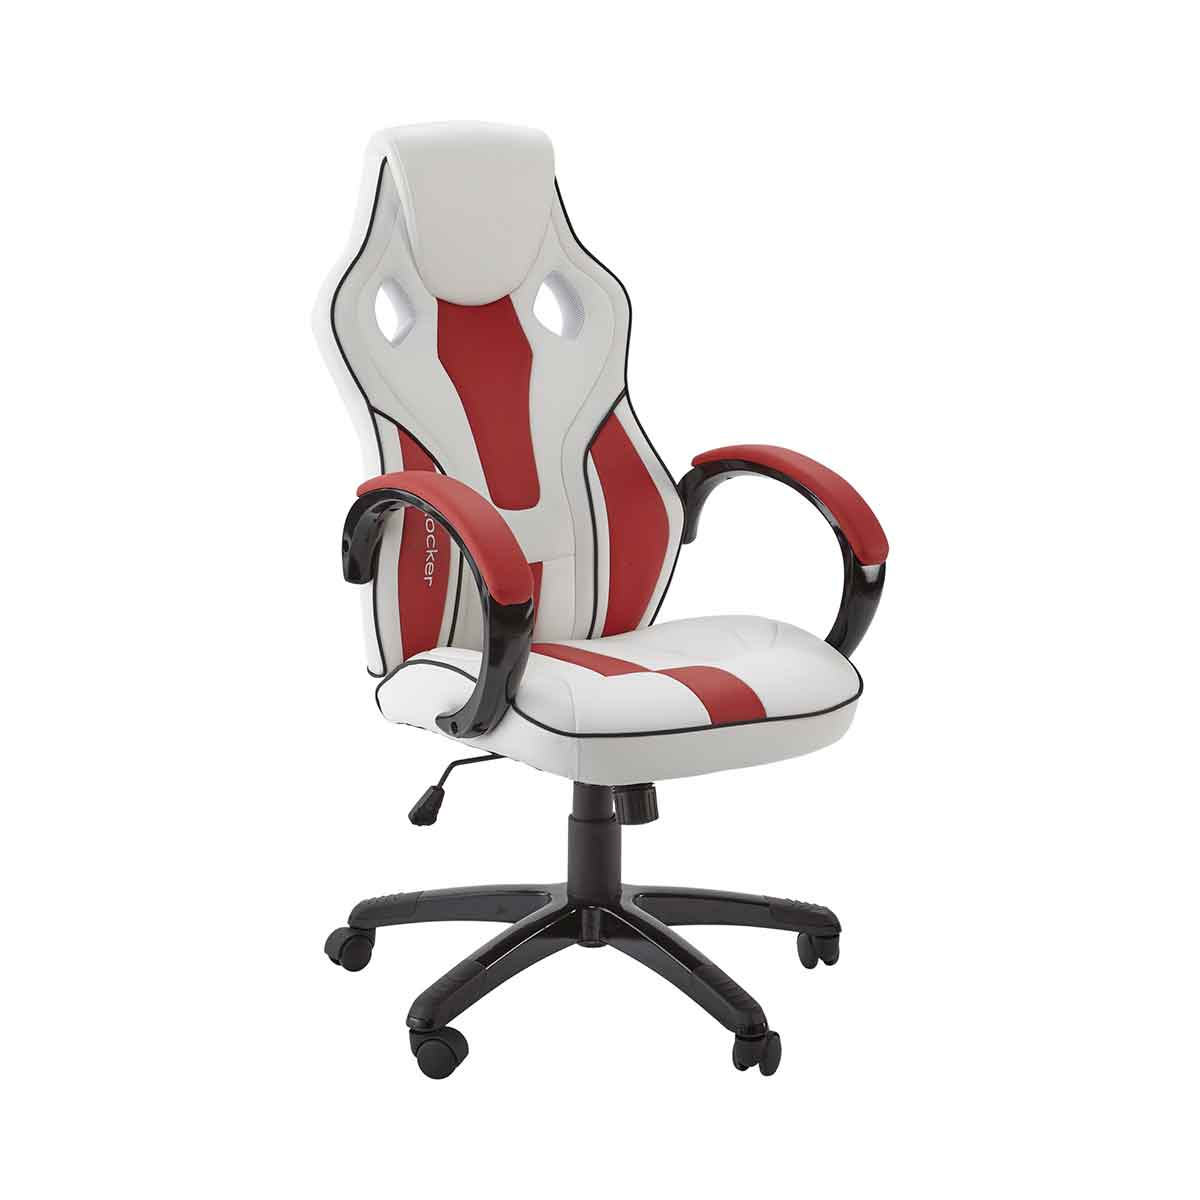 X Rocker Maverick Office Computer Gaming Chair, White/Red